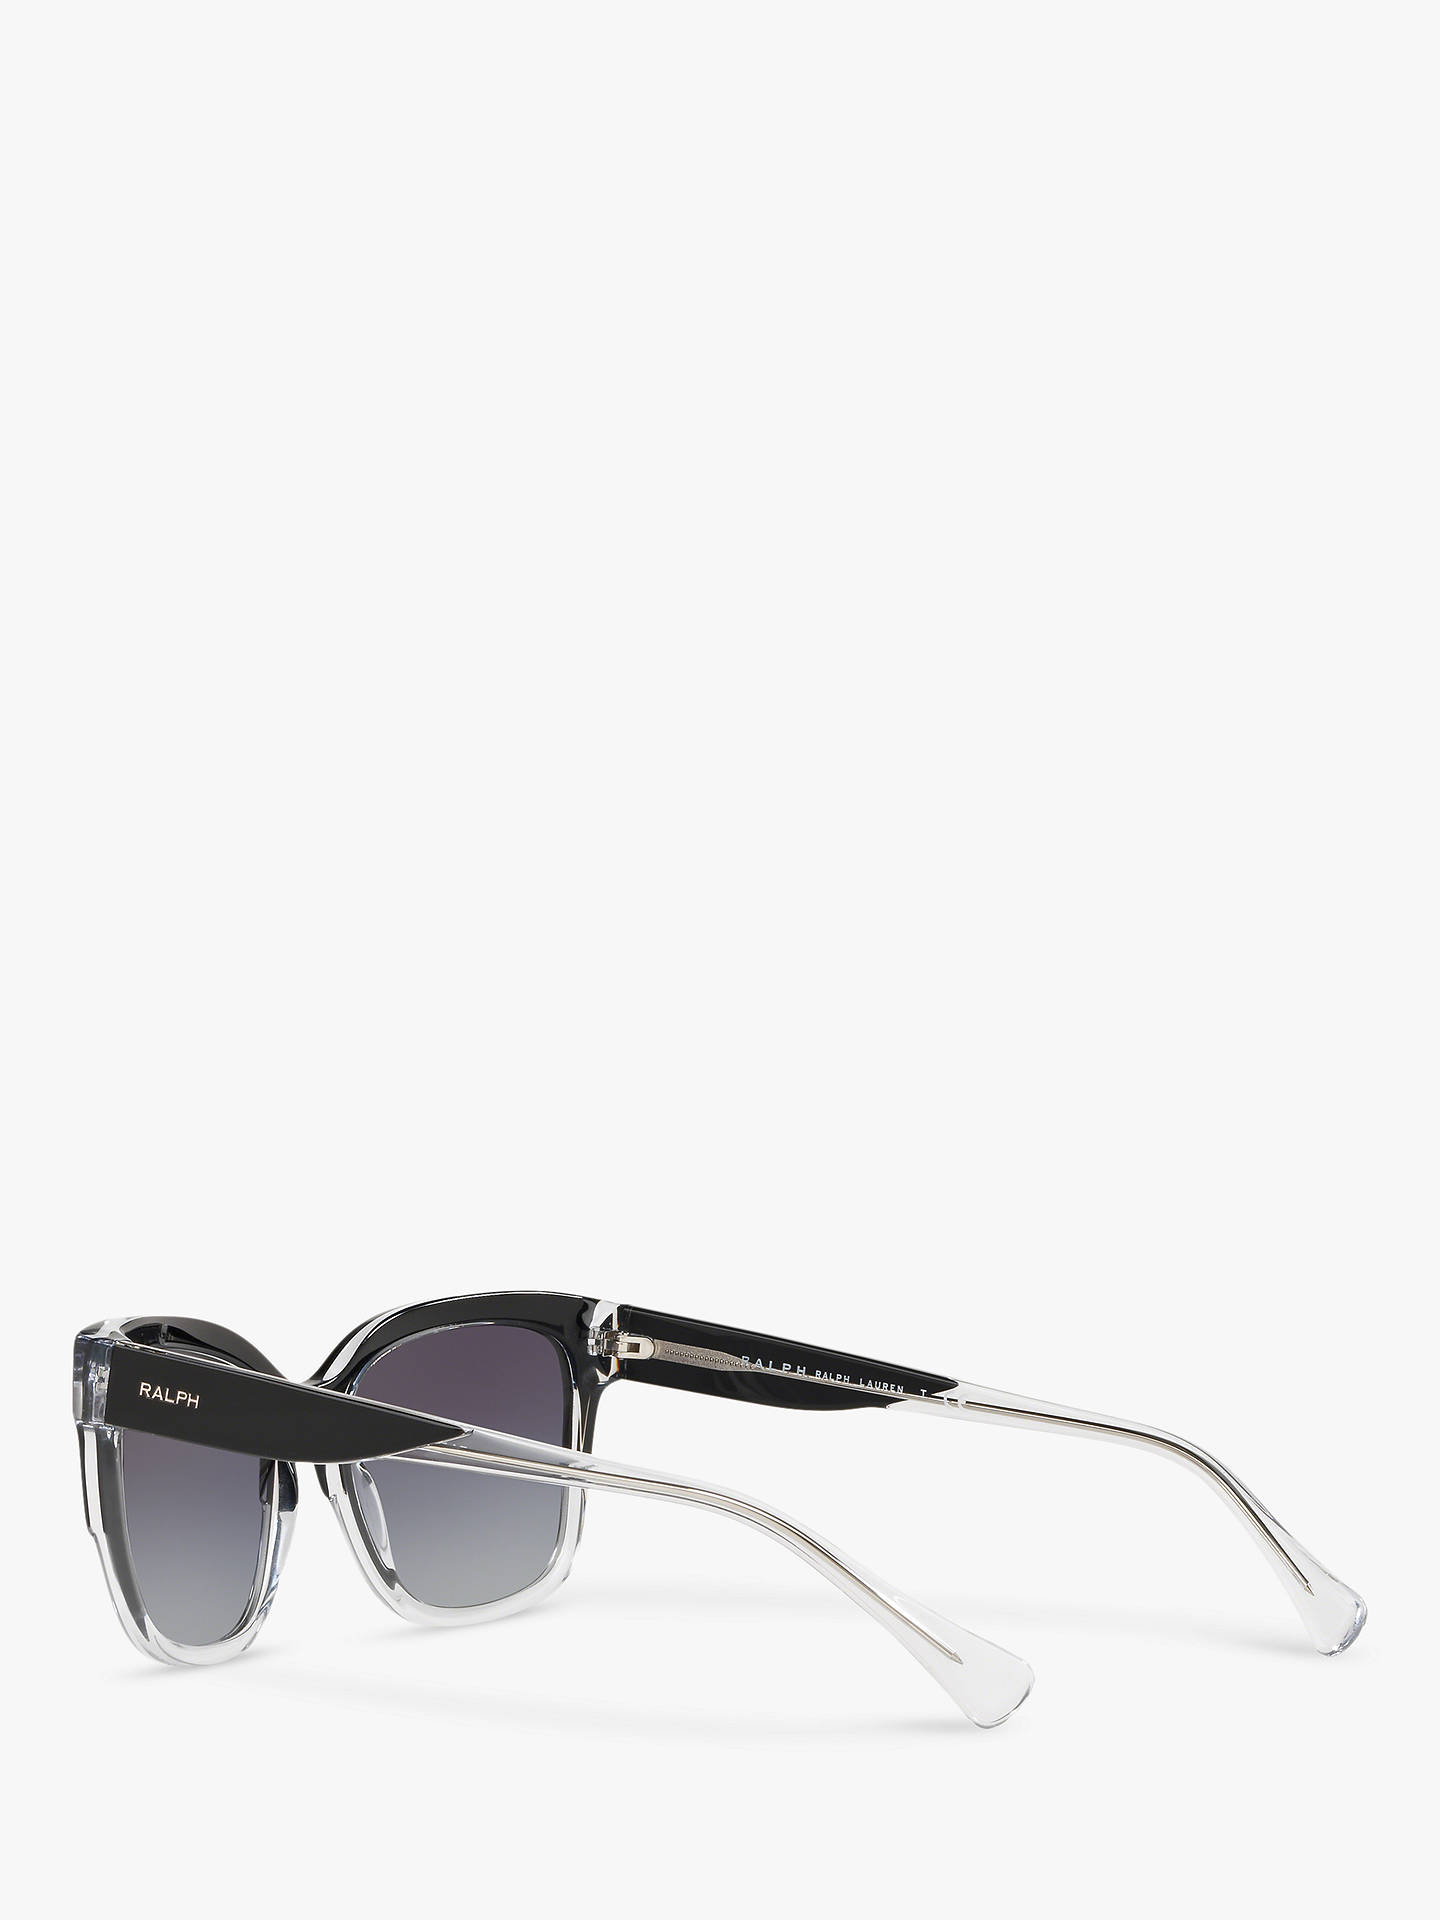 BuyRalph RA5247 Women's Square Sunglasses, Black Clear/Grey Gradient Online at johnlewis.com